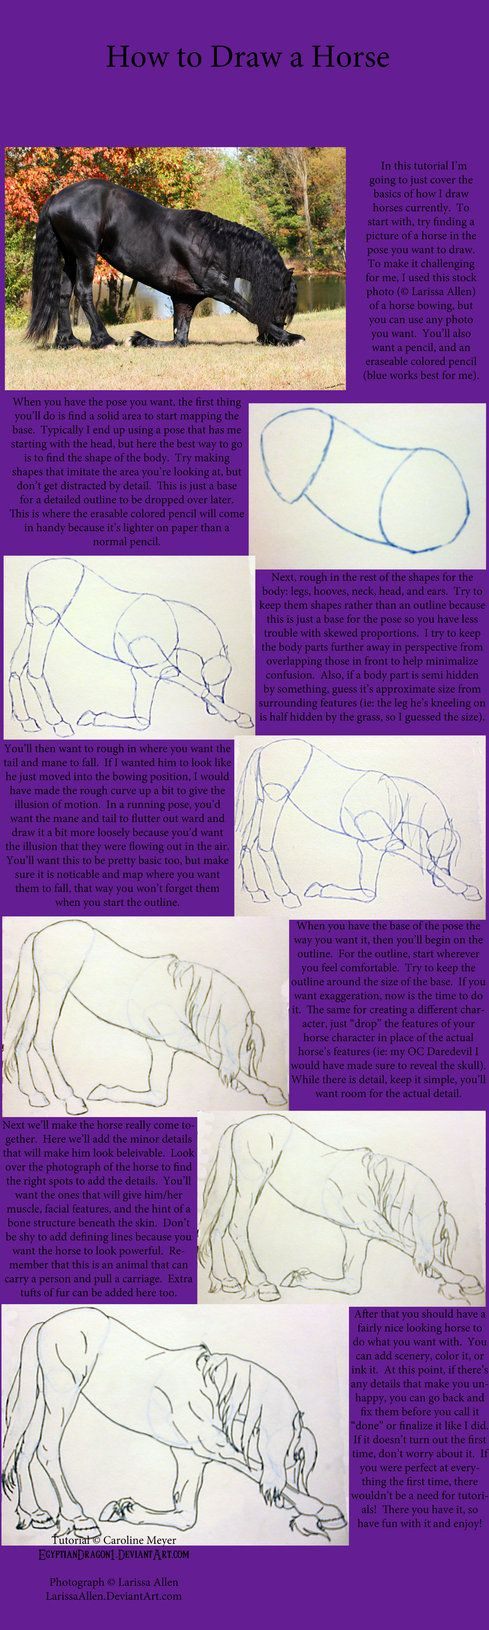 Tutorial How To Draw A Horse By Egyptiandragon1 Horse Drawings Animal Drawings Pencil Drawings Of Animals